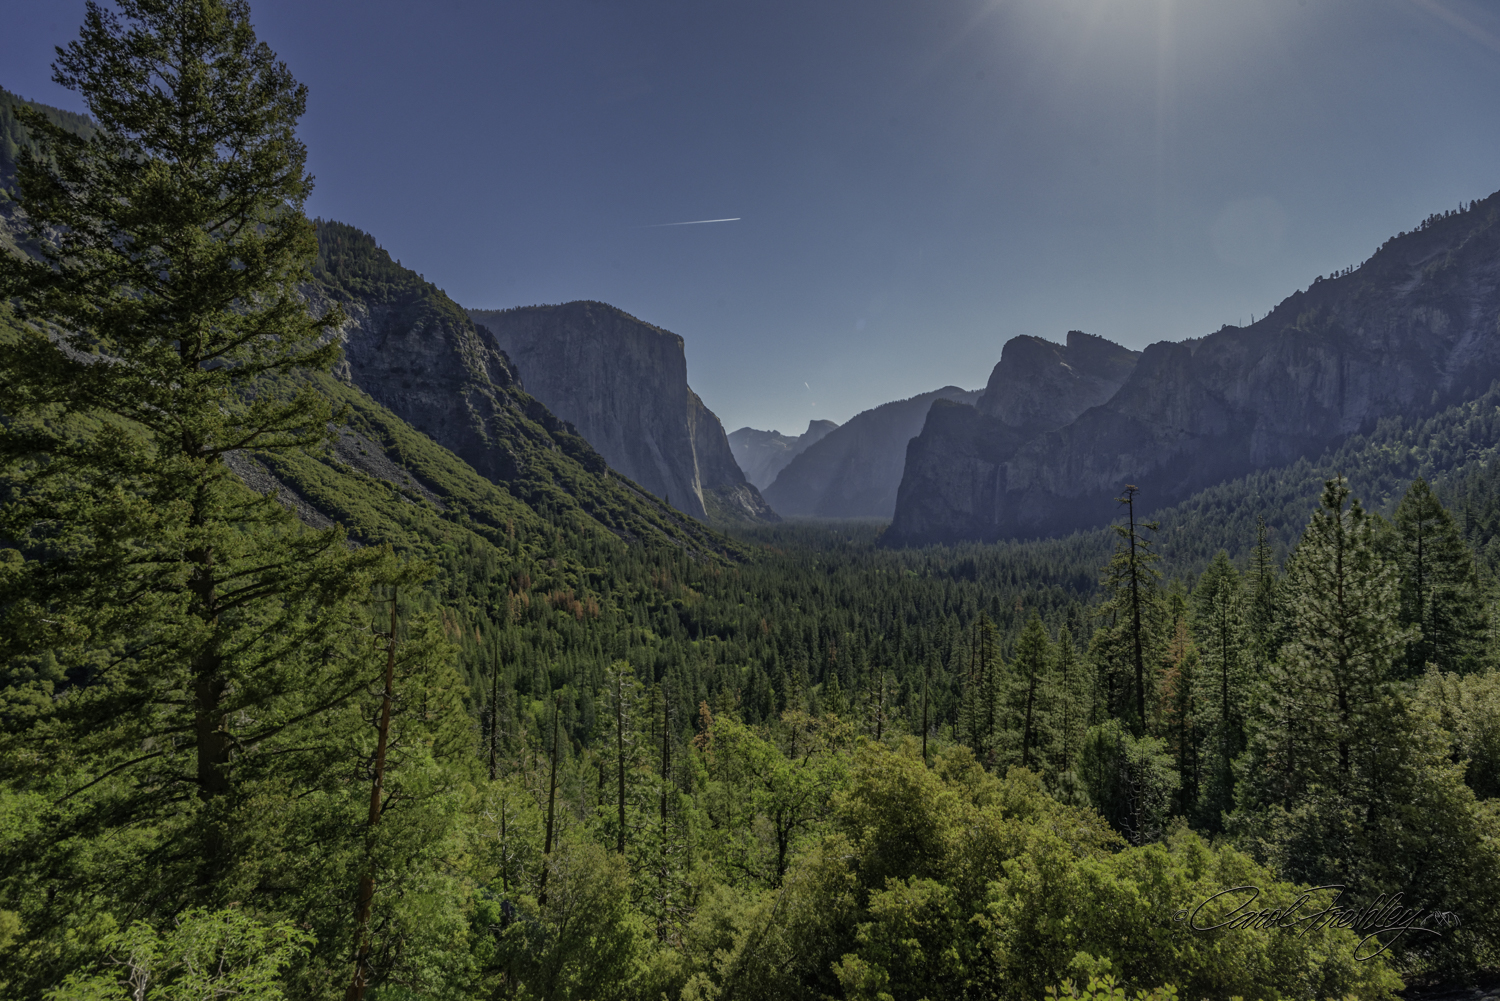 Taken with new 20mm prime Nikkor fl1.8. Shot taken with my new 20mm prime Nikkor f/1.8. A shot from Tunnel View with haze and midday light!! But, worth giving you asense of the Yosemite Valley.